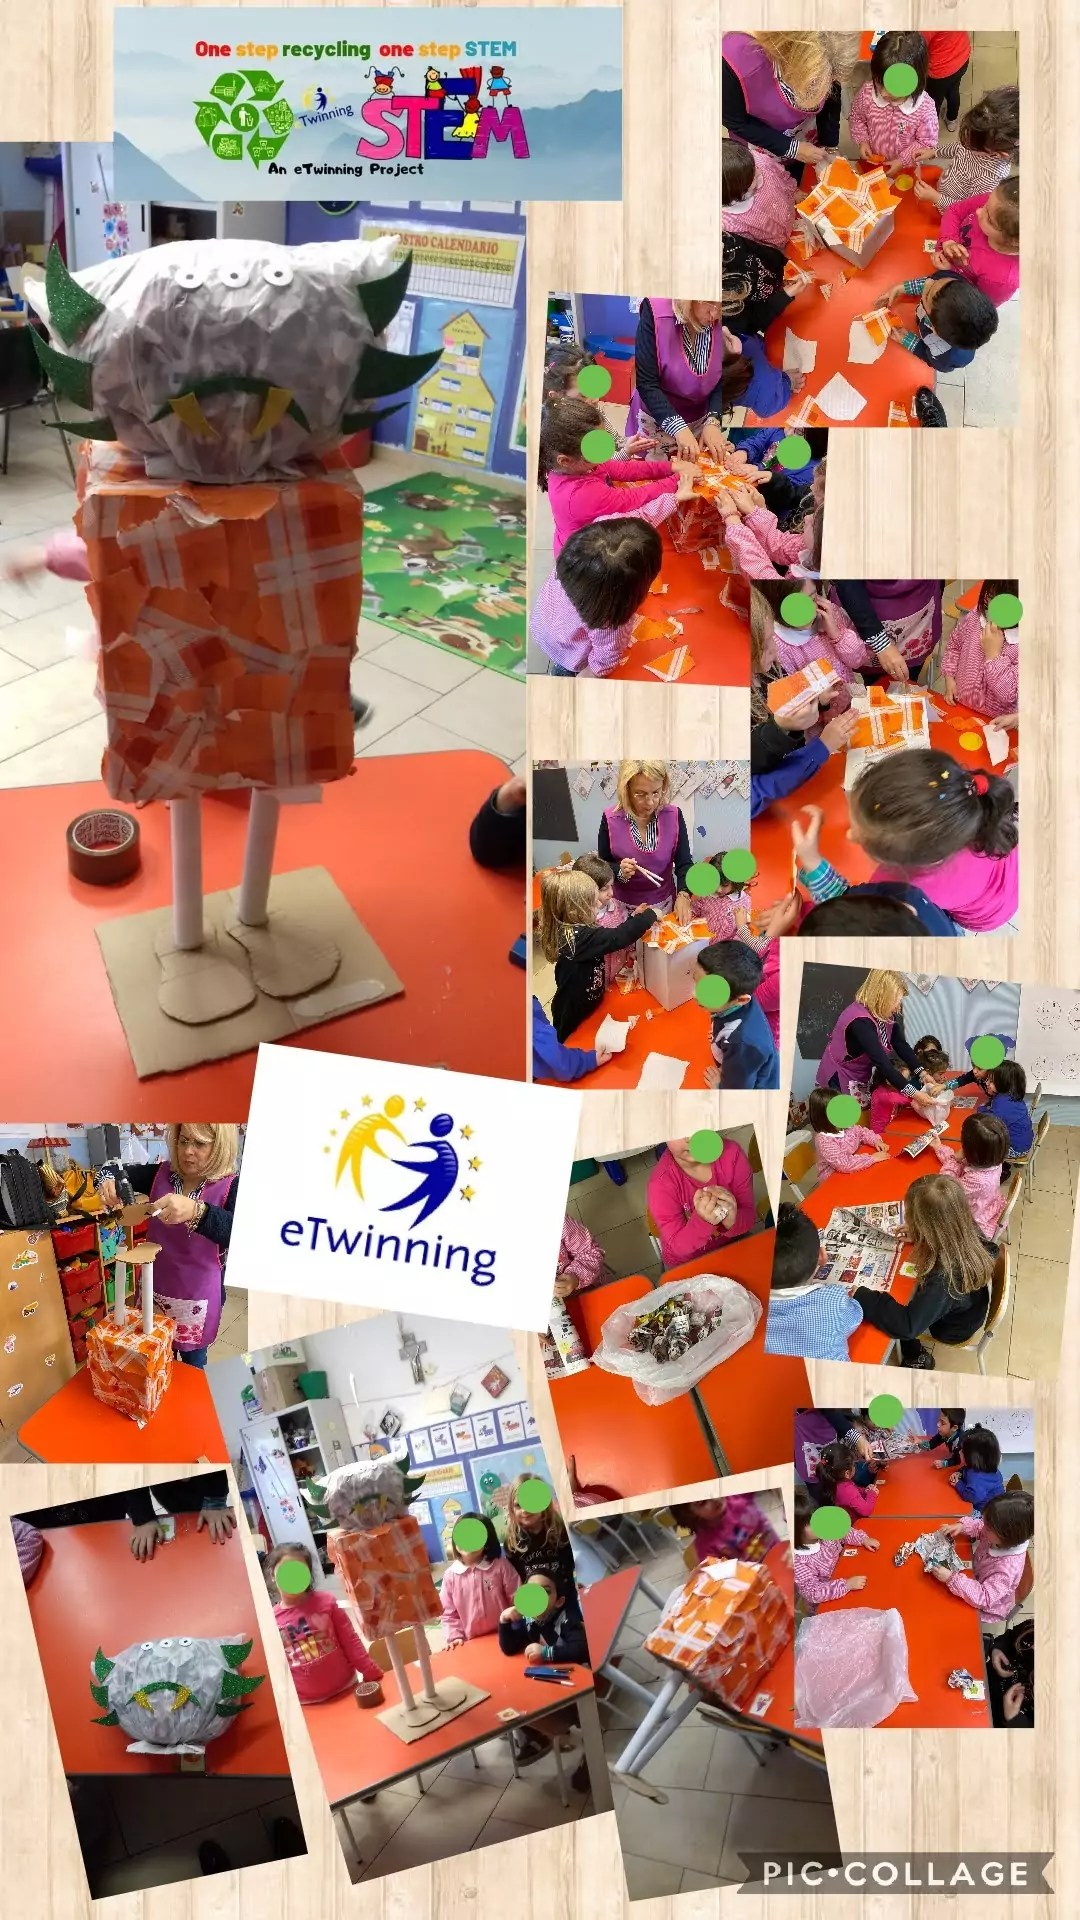 """Concluso il progetto europeo eTwinning """"One step recycling, one step STEM"""""""